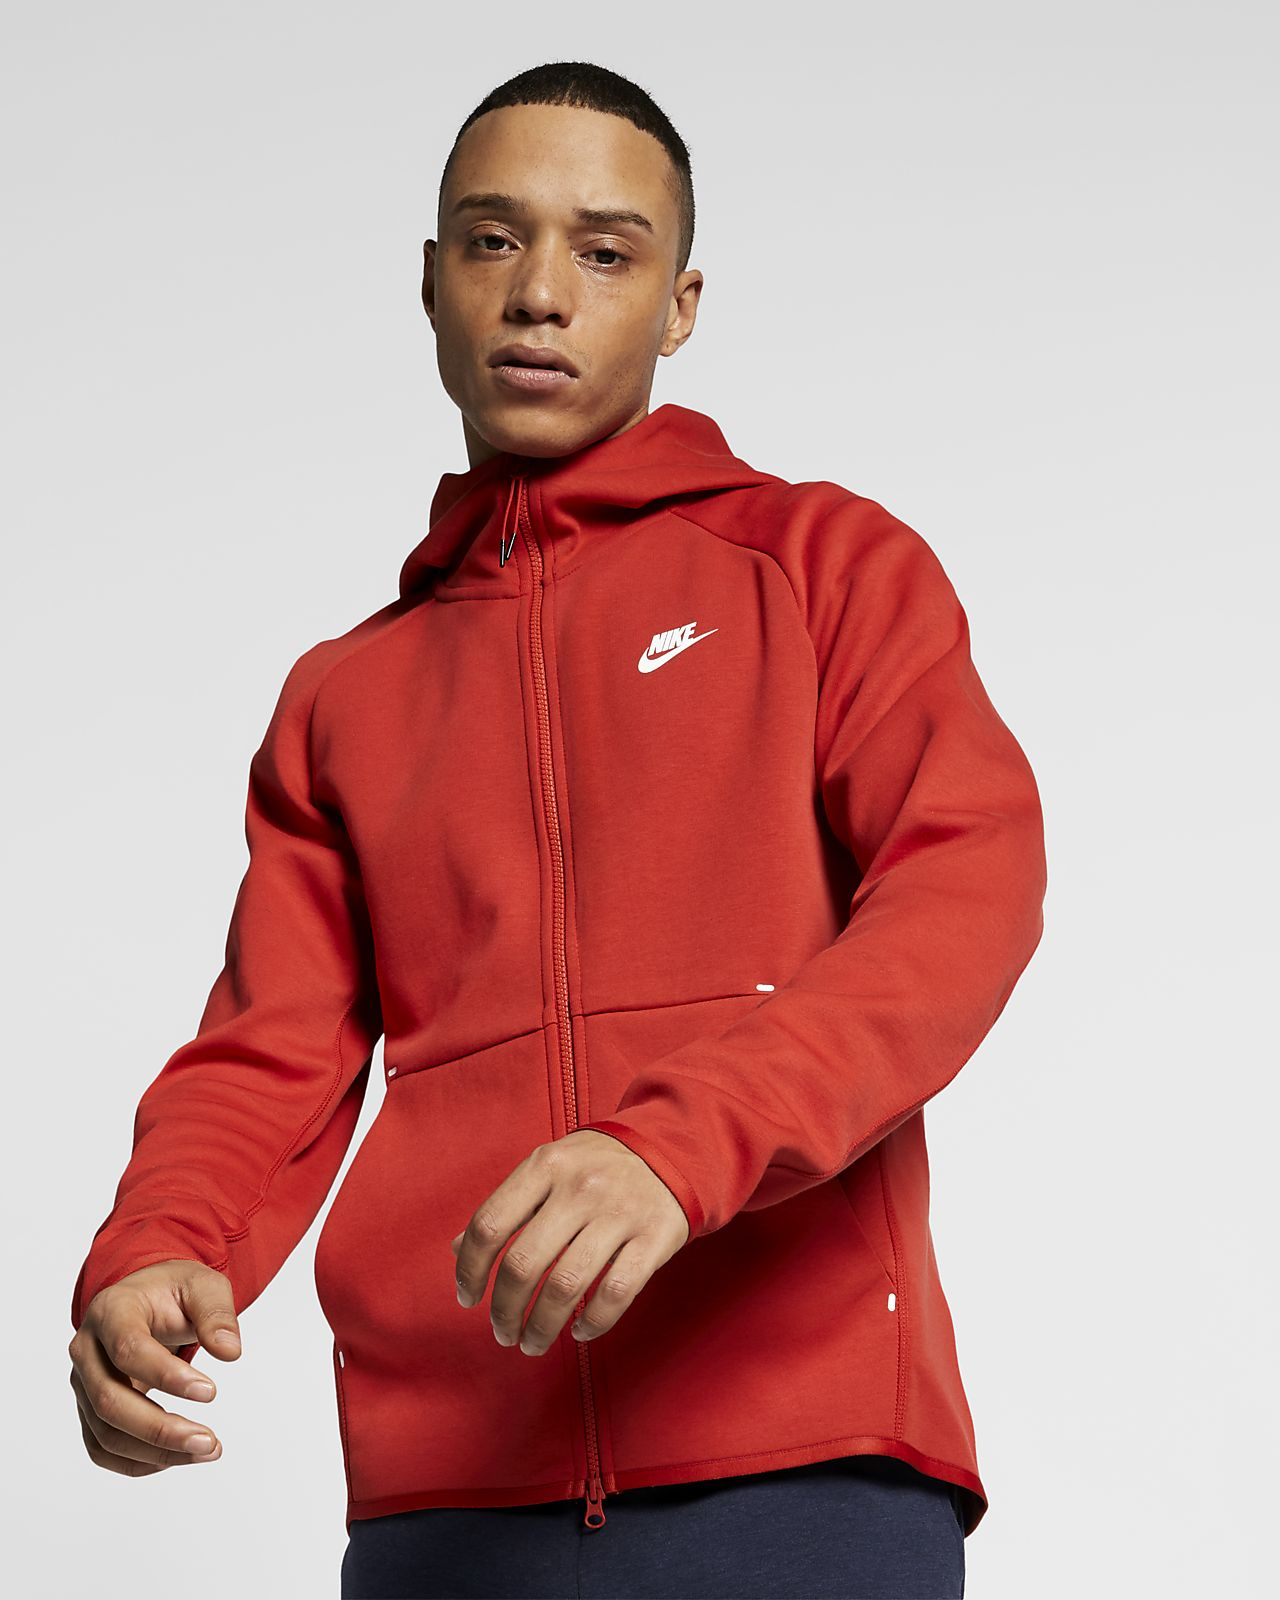 a6d90b55b737 Nike Sportswear Tech Fleece Men s Full-Zip Hoodie. Nike.com